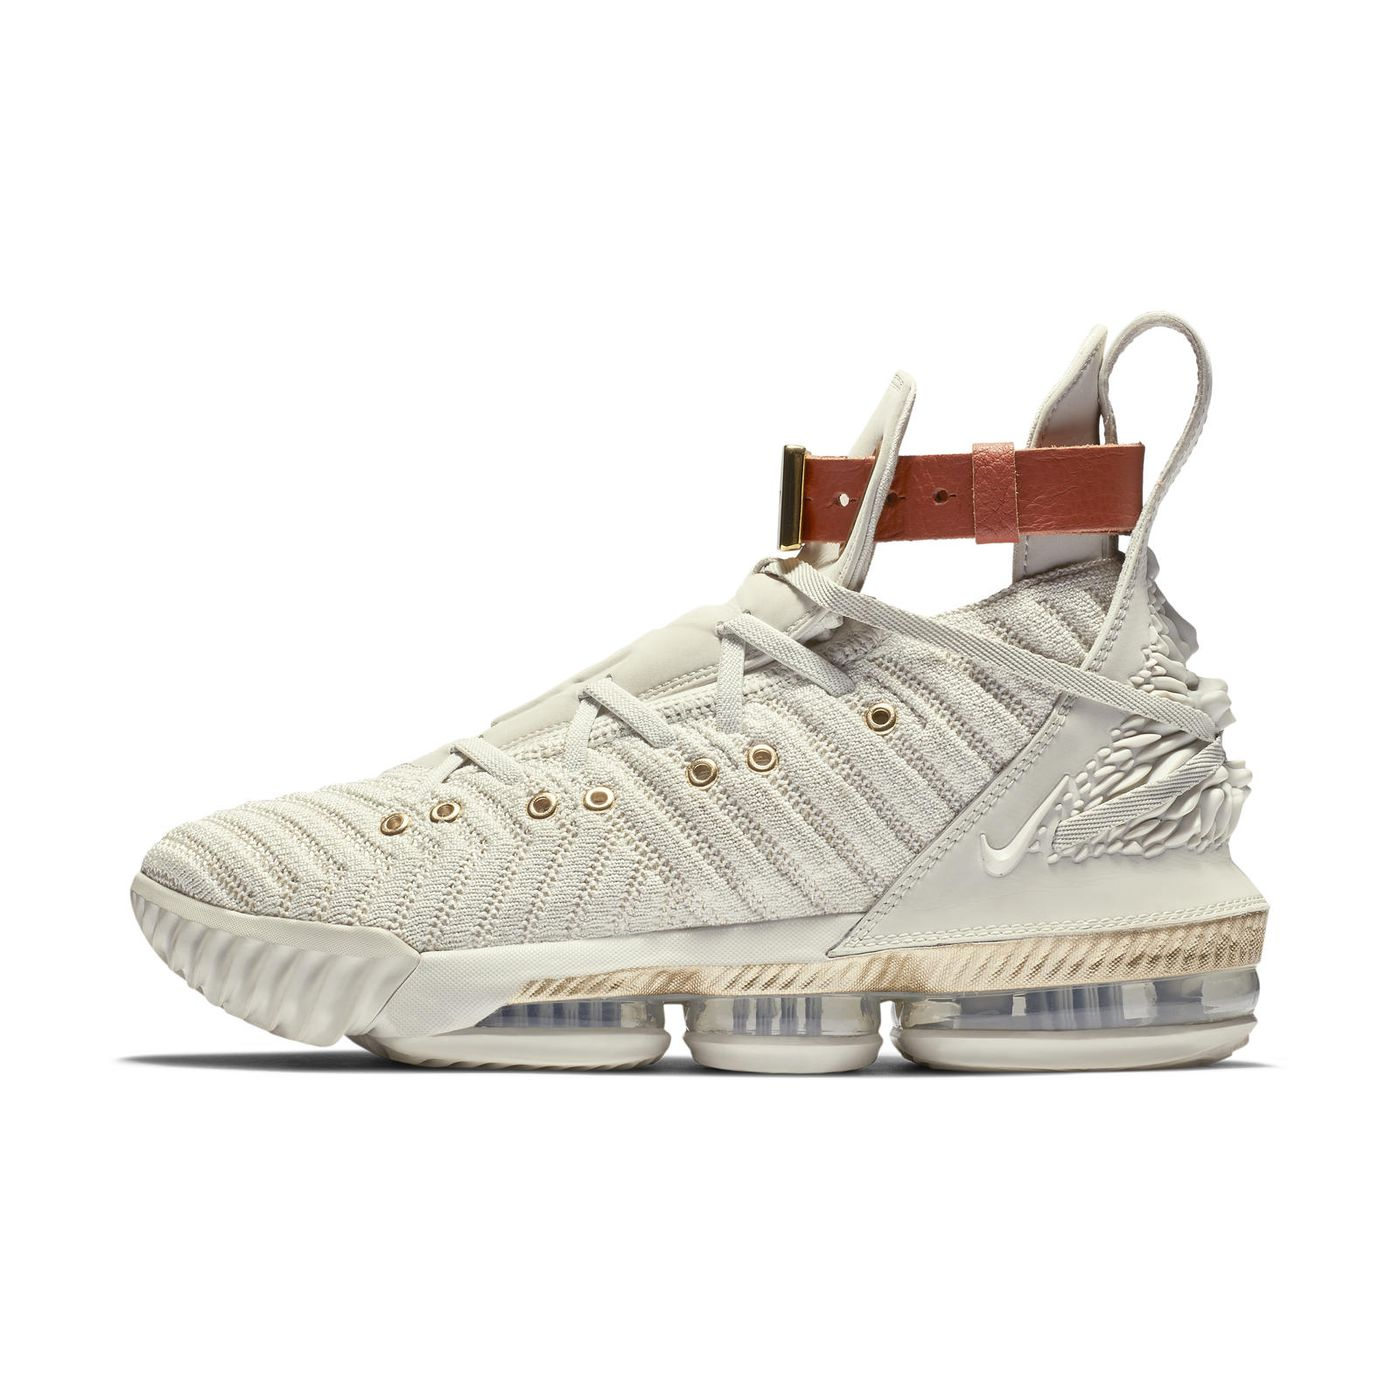 factory authentic 00684 9b13b The HFR x LeBron 16 shoe was designed for women by women ...